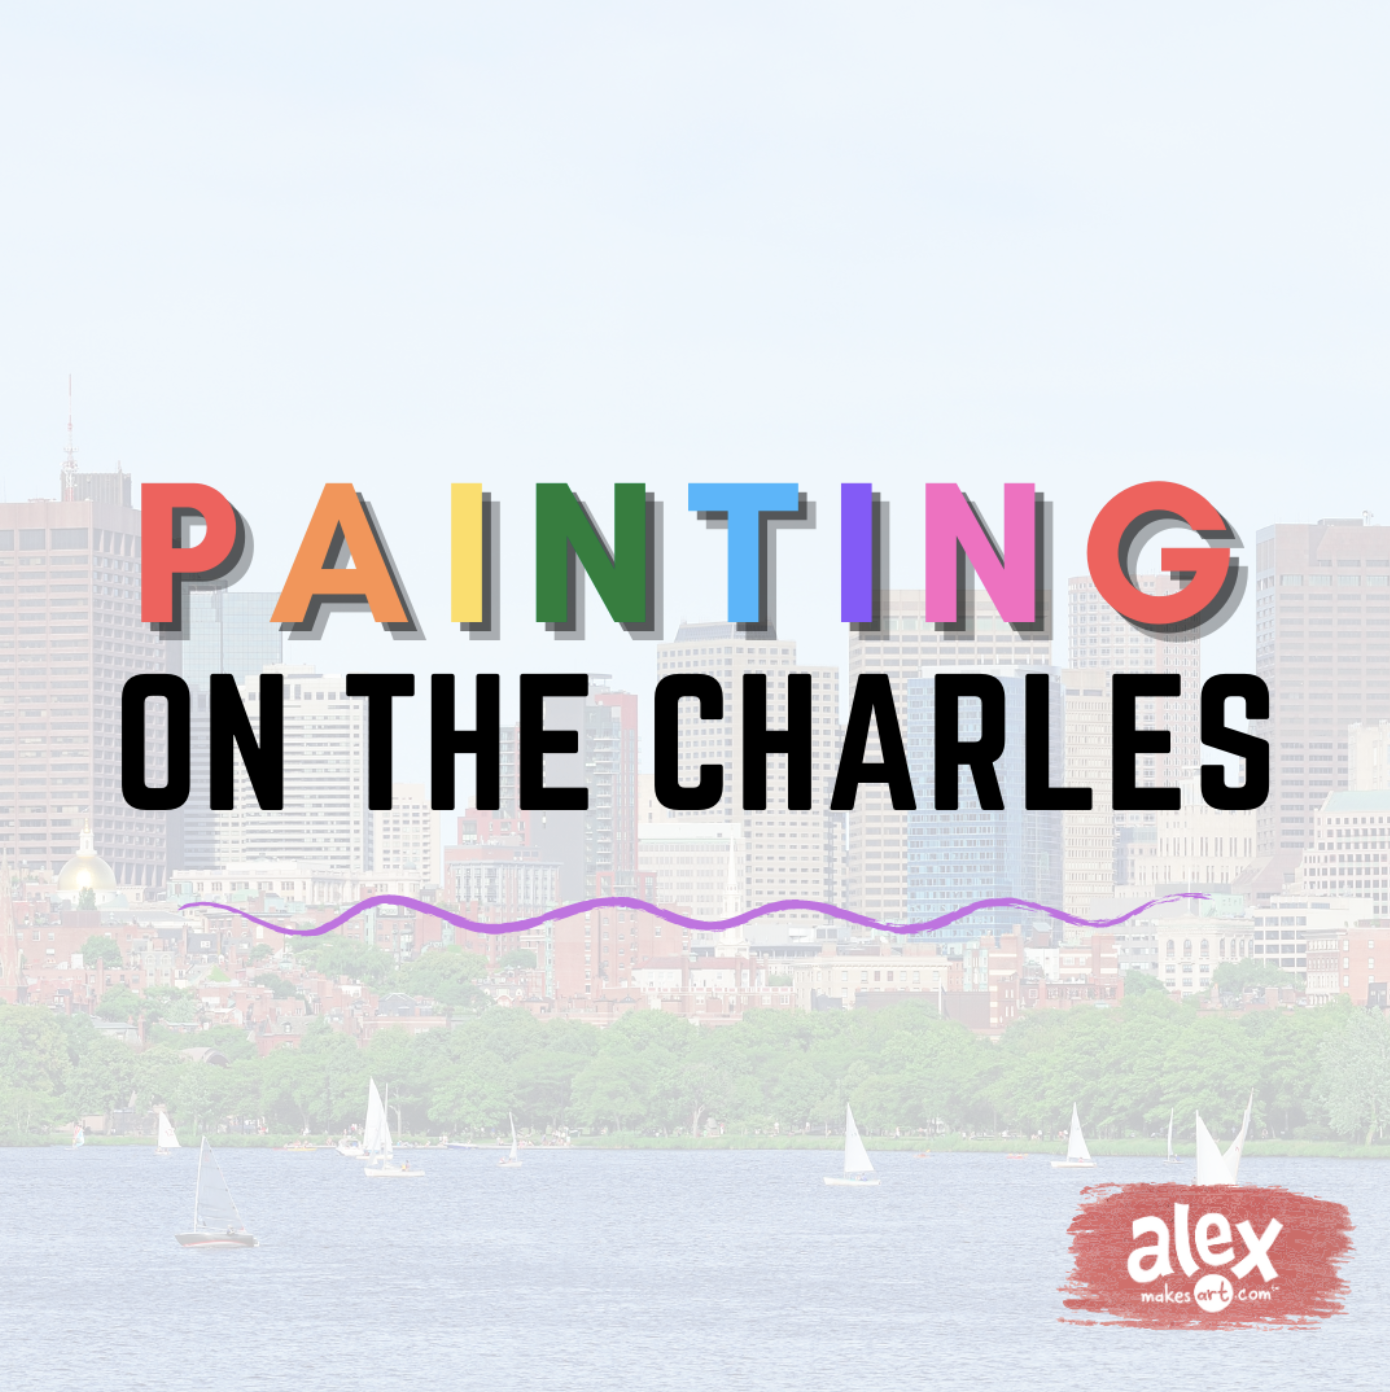 Painting on the Charles